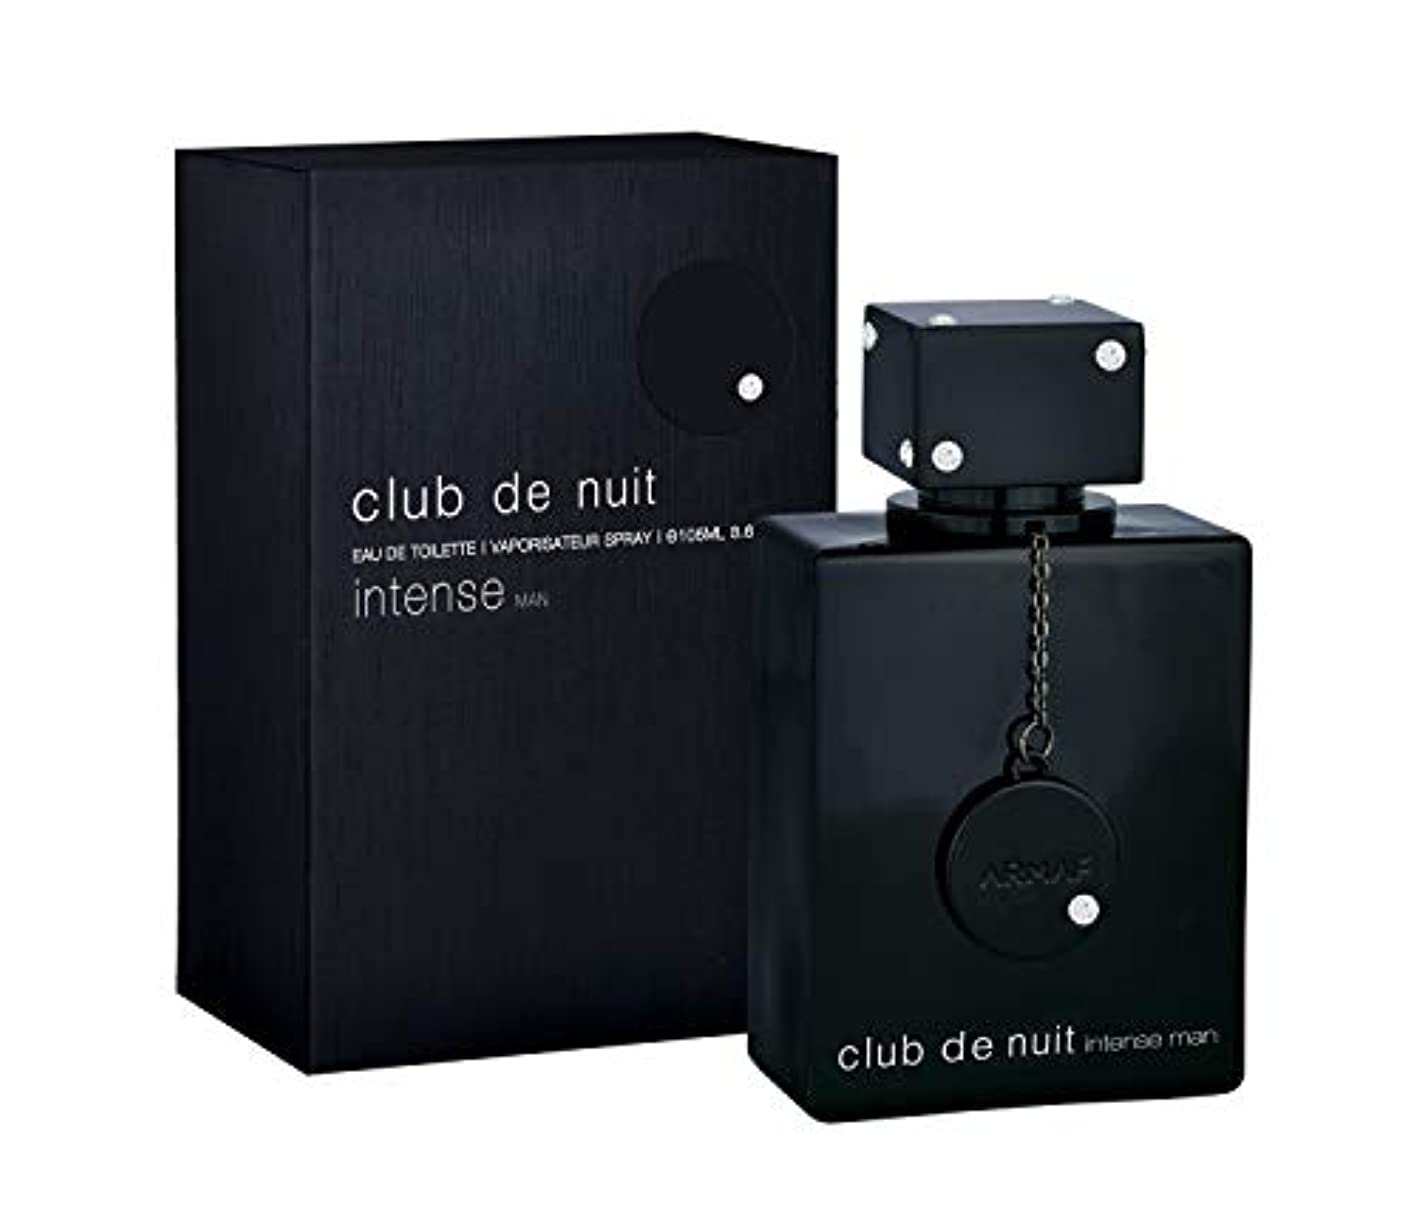 クリケット防衛転倒Armaf club de nuit men intense Perfume EDT Eau De Toilette 100 ml Fragrance